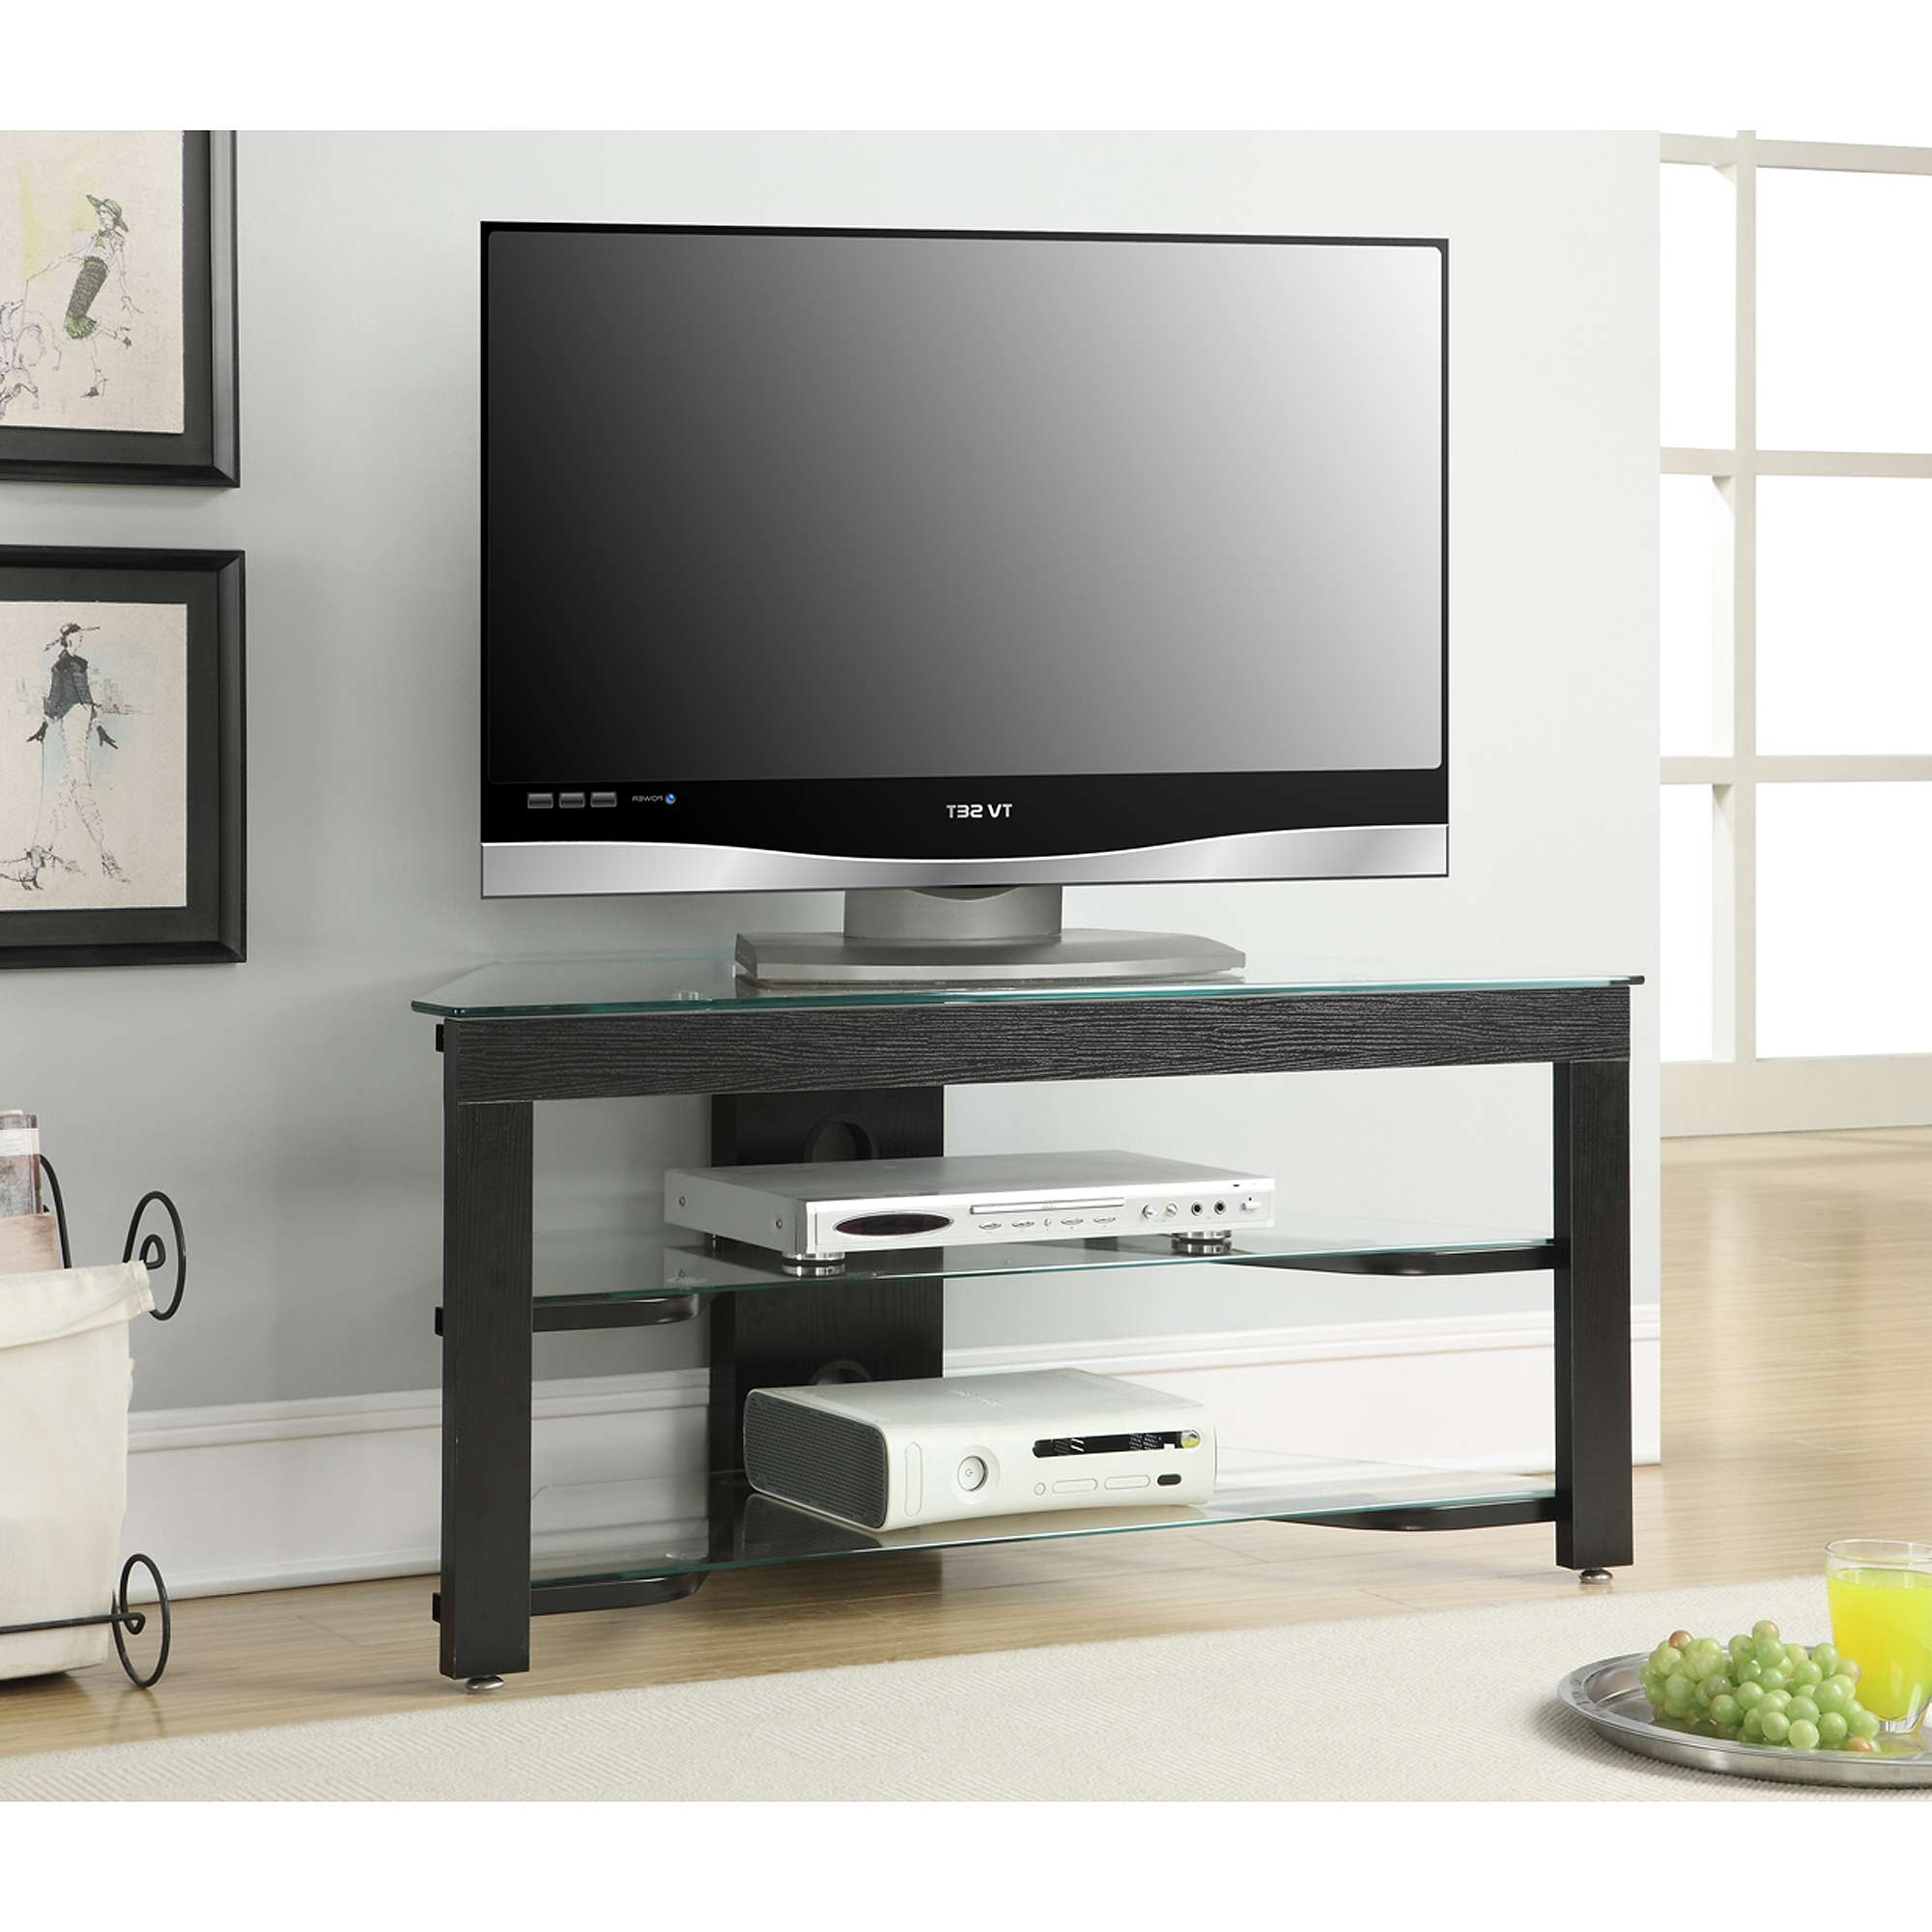 Tv Stand With Rounded Corners – Round Designs Intended For Tv Stands With Rounded Corners (View 6 of 15)